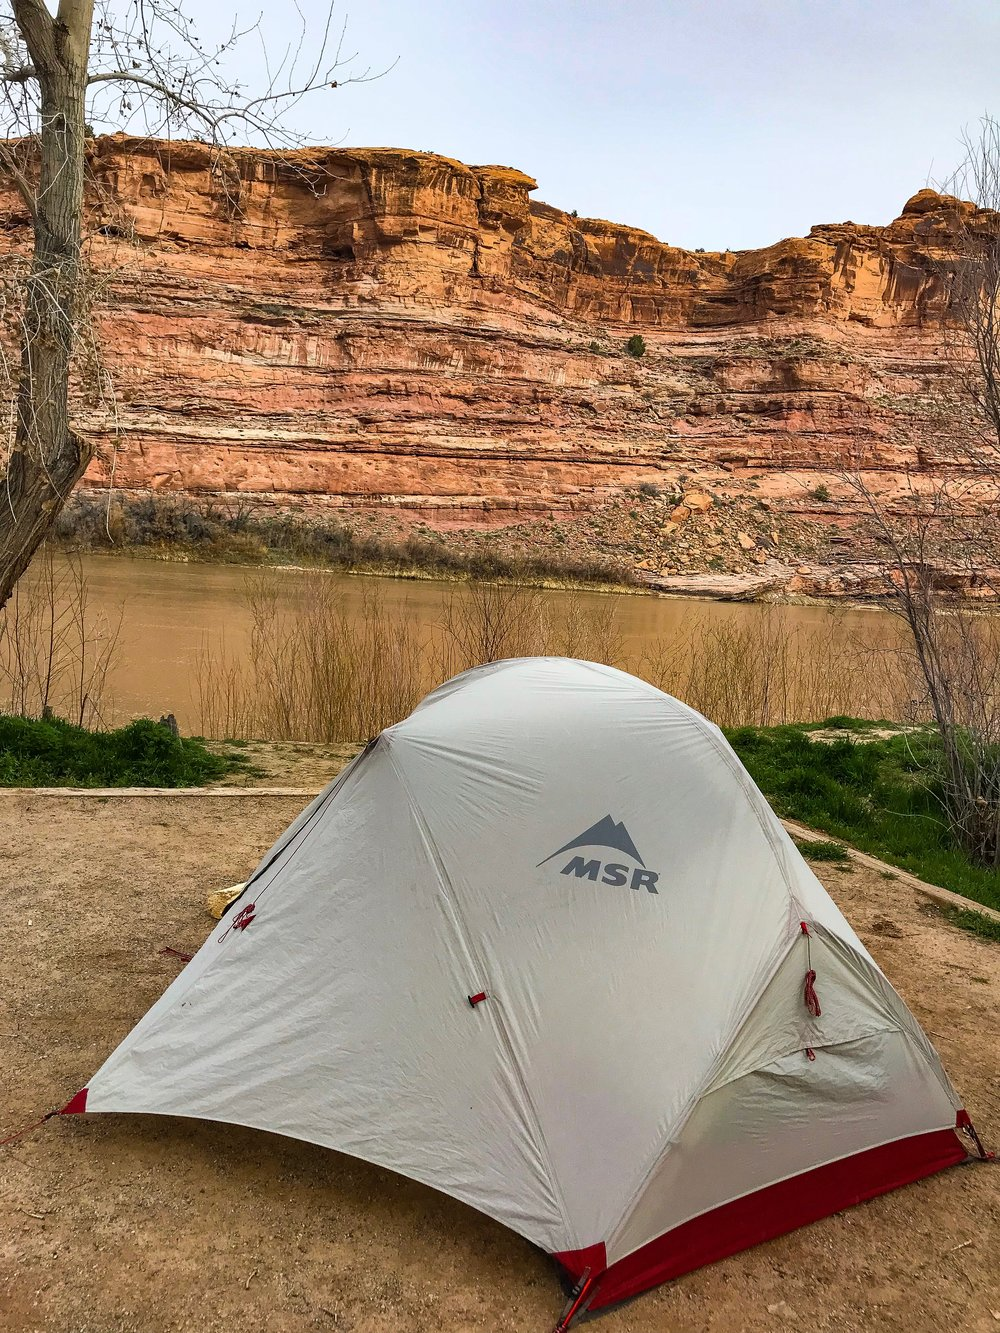 My home for the night at Grandstaff campground along the Colorado River.